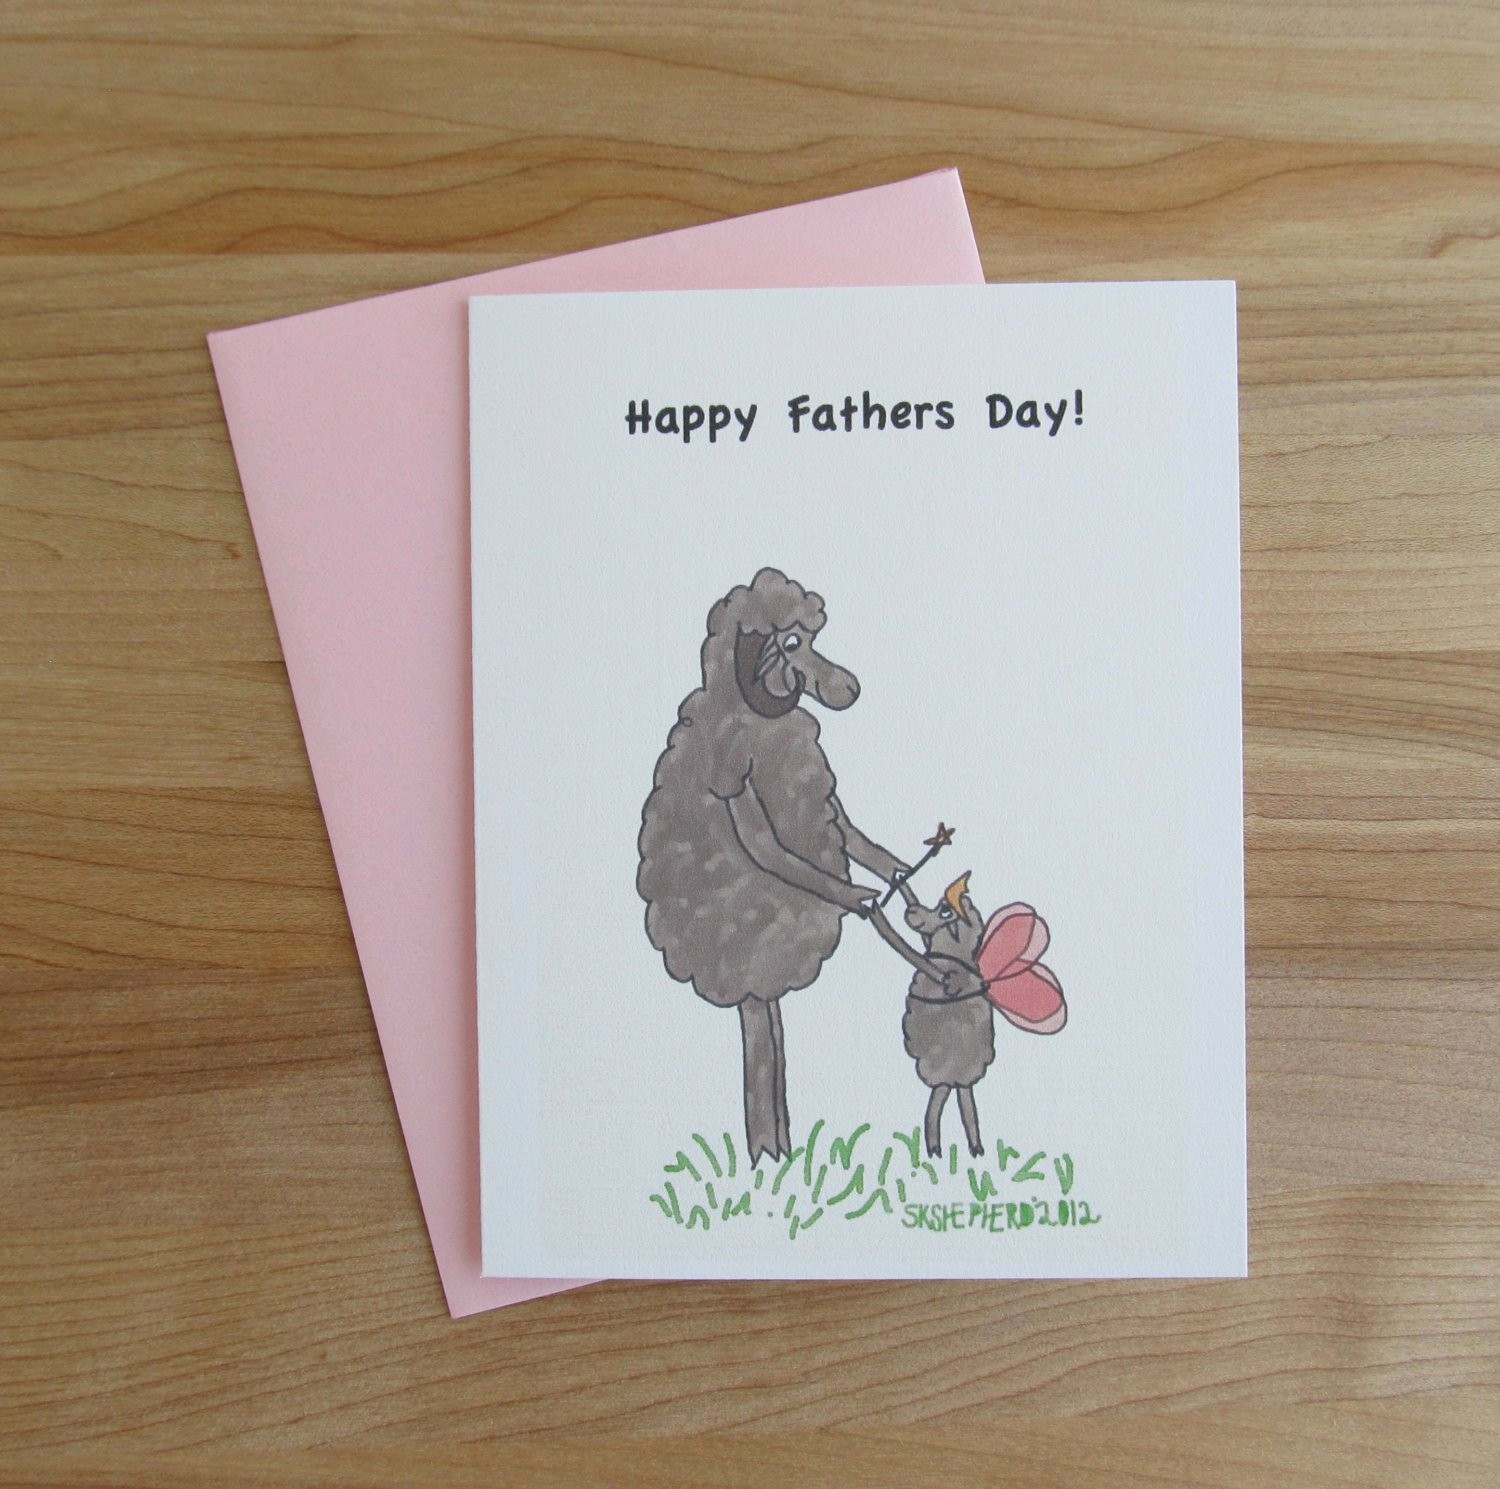 Fathers Day Card From Daughters New Father & Daughter Card Happy Fathers Day White or